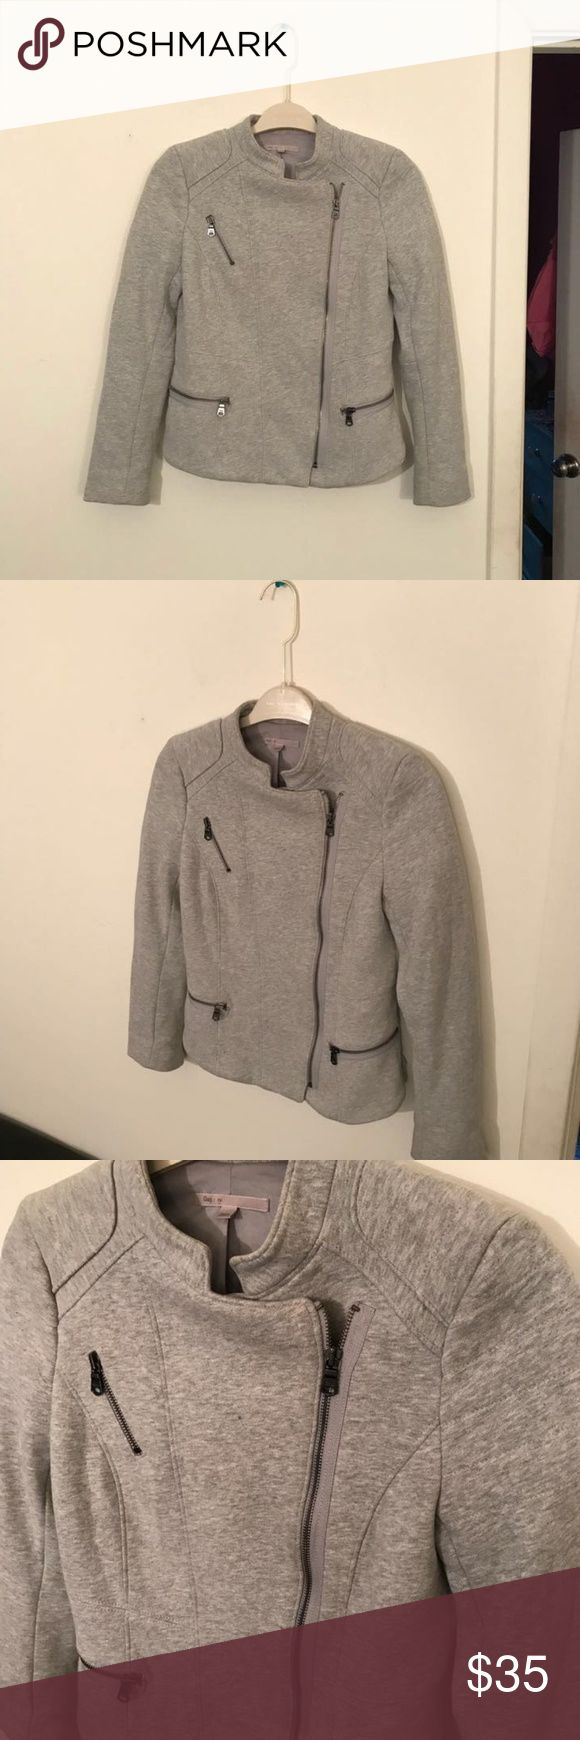 GAP Moto Jacket Heather Gray Zip Up GAP Moto Jacket Heather Gray Zip Up  Perfect for fall and spring  Pewter silver zip up details throughout  Fully lined.  Zipper closures for multiple variations of wear  Shoulder to shoulder: 15'' Length: 20'' Great condition GAP Jackets & Coats